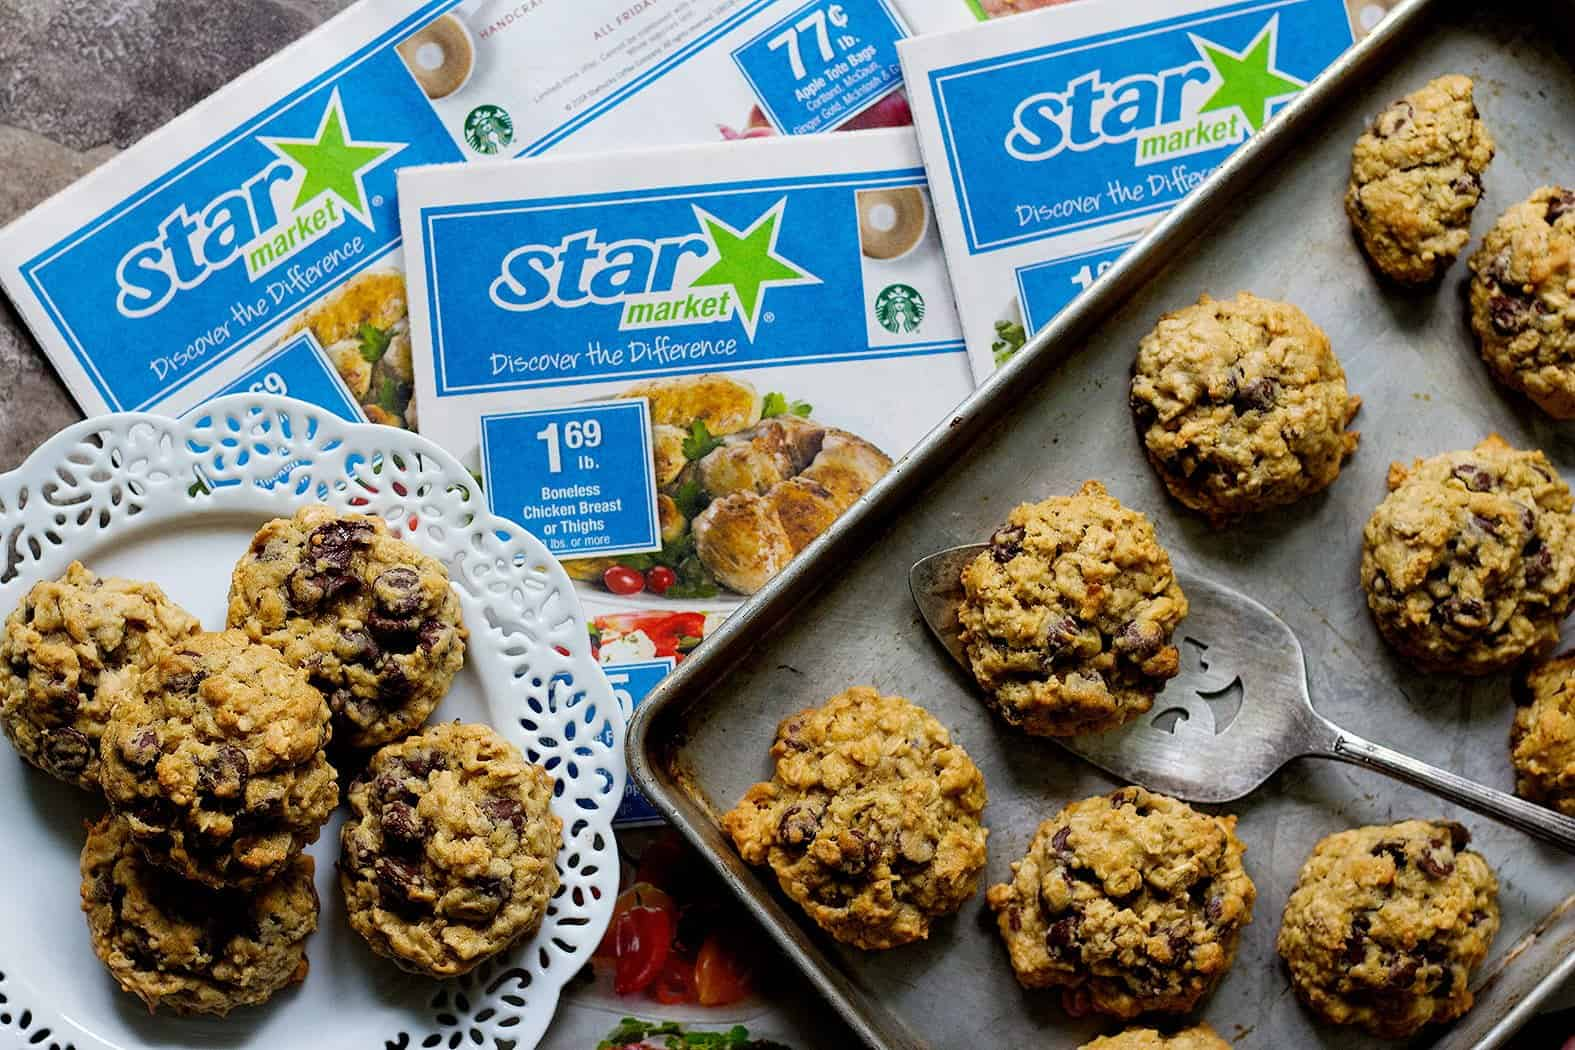 Let the chocolate chip oatmeal cookies cool down a bit and enjoy.